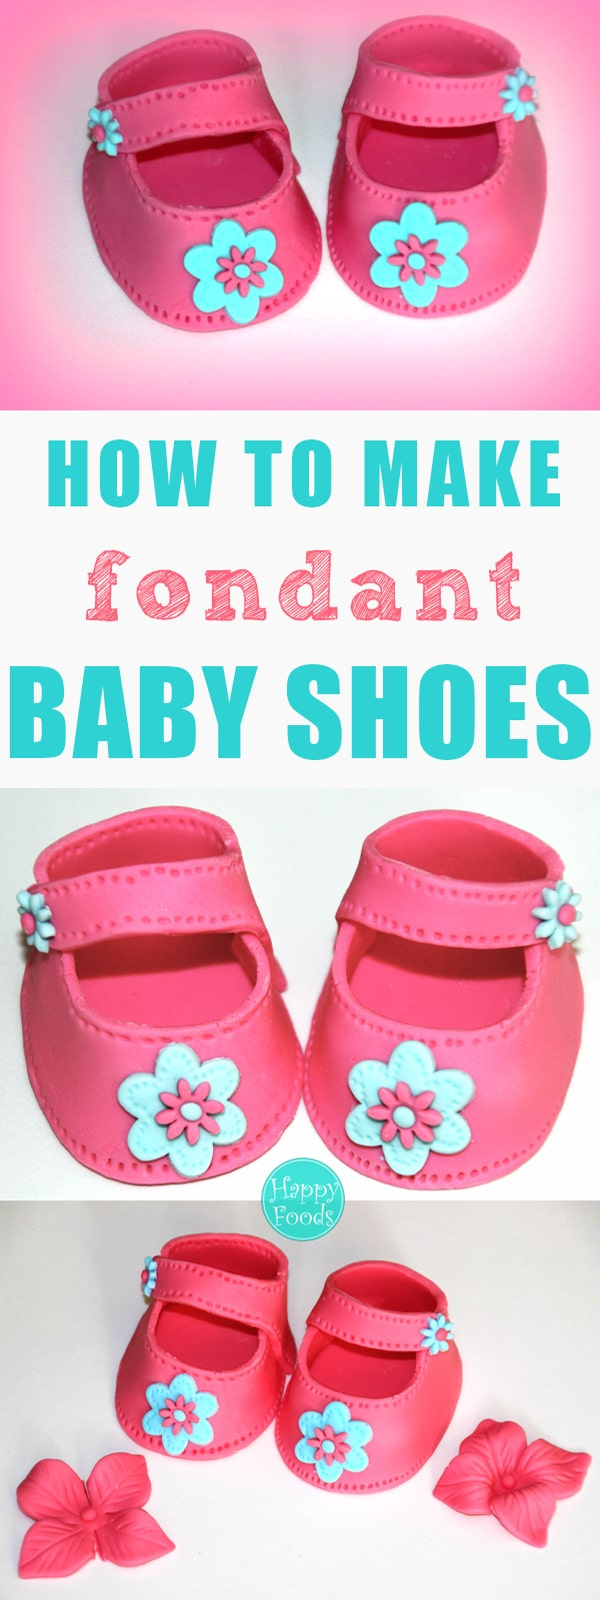 Learn how to make these cute little Fondant Baby Shoes. They will be a beautiful decoration on your cake! Ideal for christening, baby shower or birthdays. Cake decorating tutorial